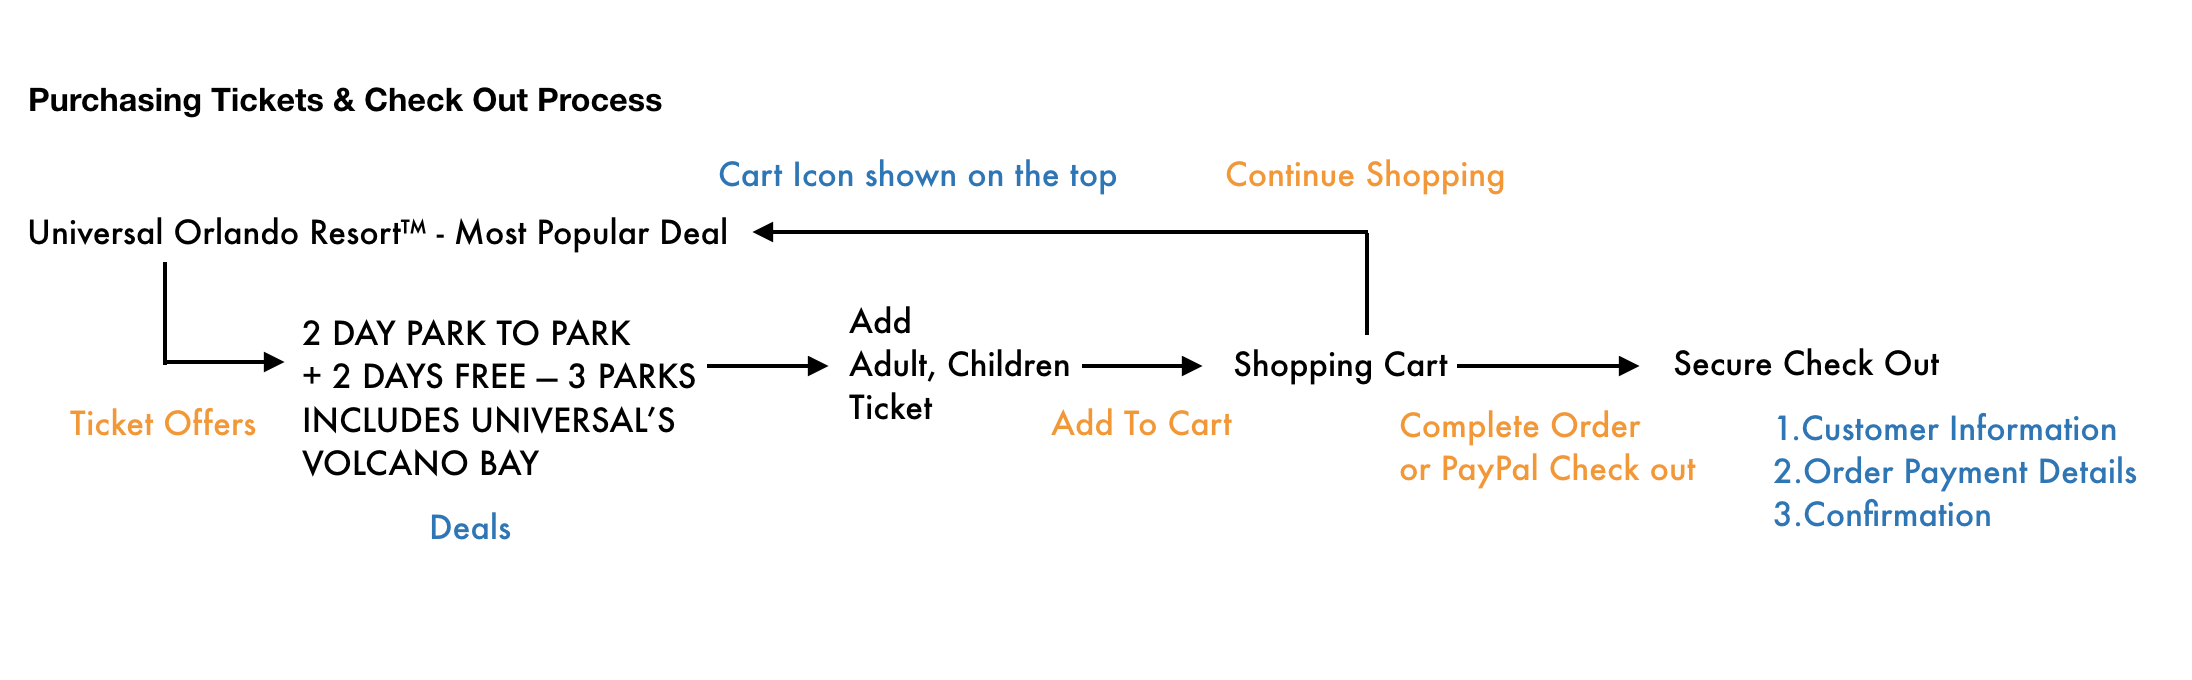 Purchasing Tickets & Check Out Process.png